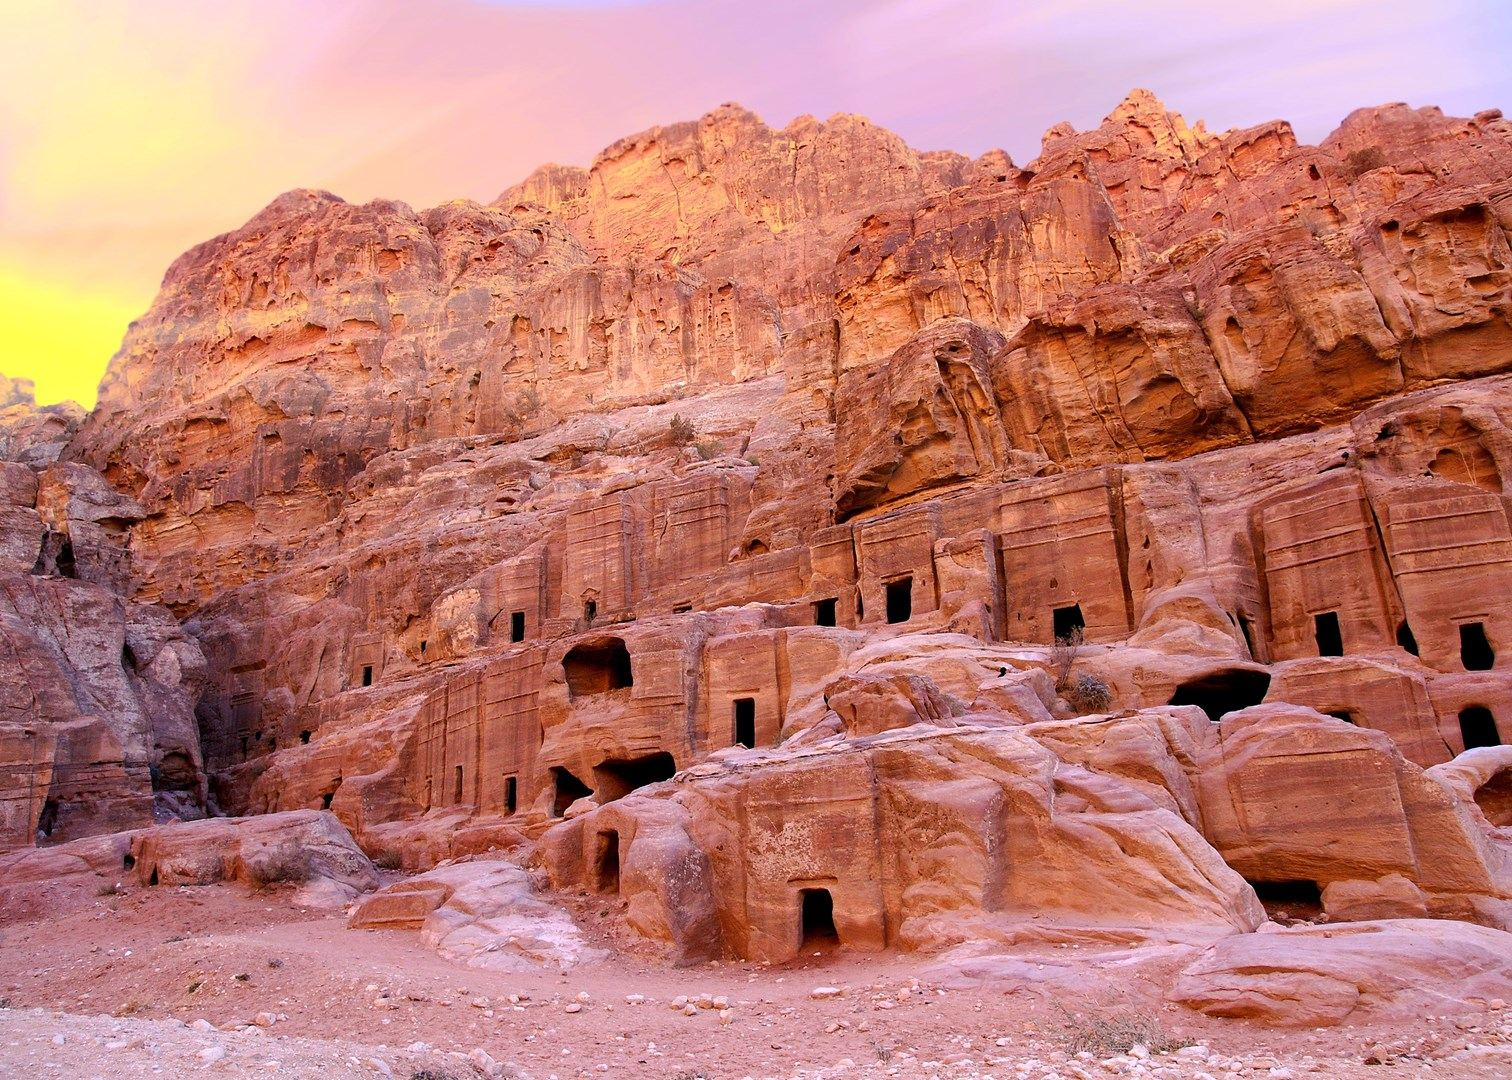 Sometimes-Petra-is-called-%E2%80%98Rose-City%E2%80%99due-to-Rose-Red-colored-sandstone-hills..jpg